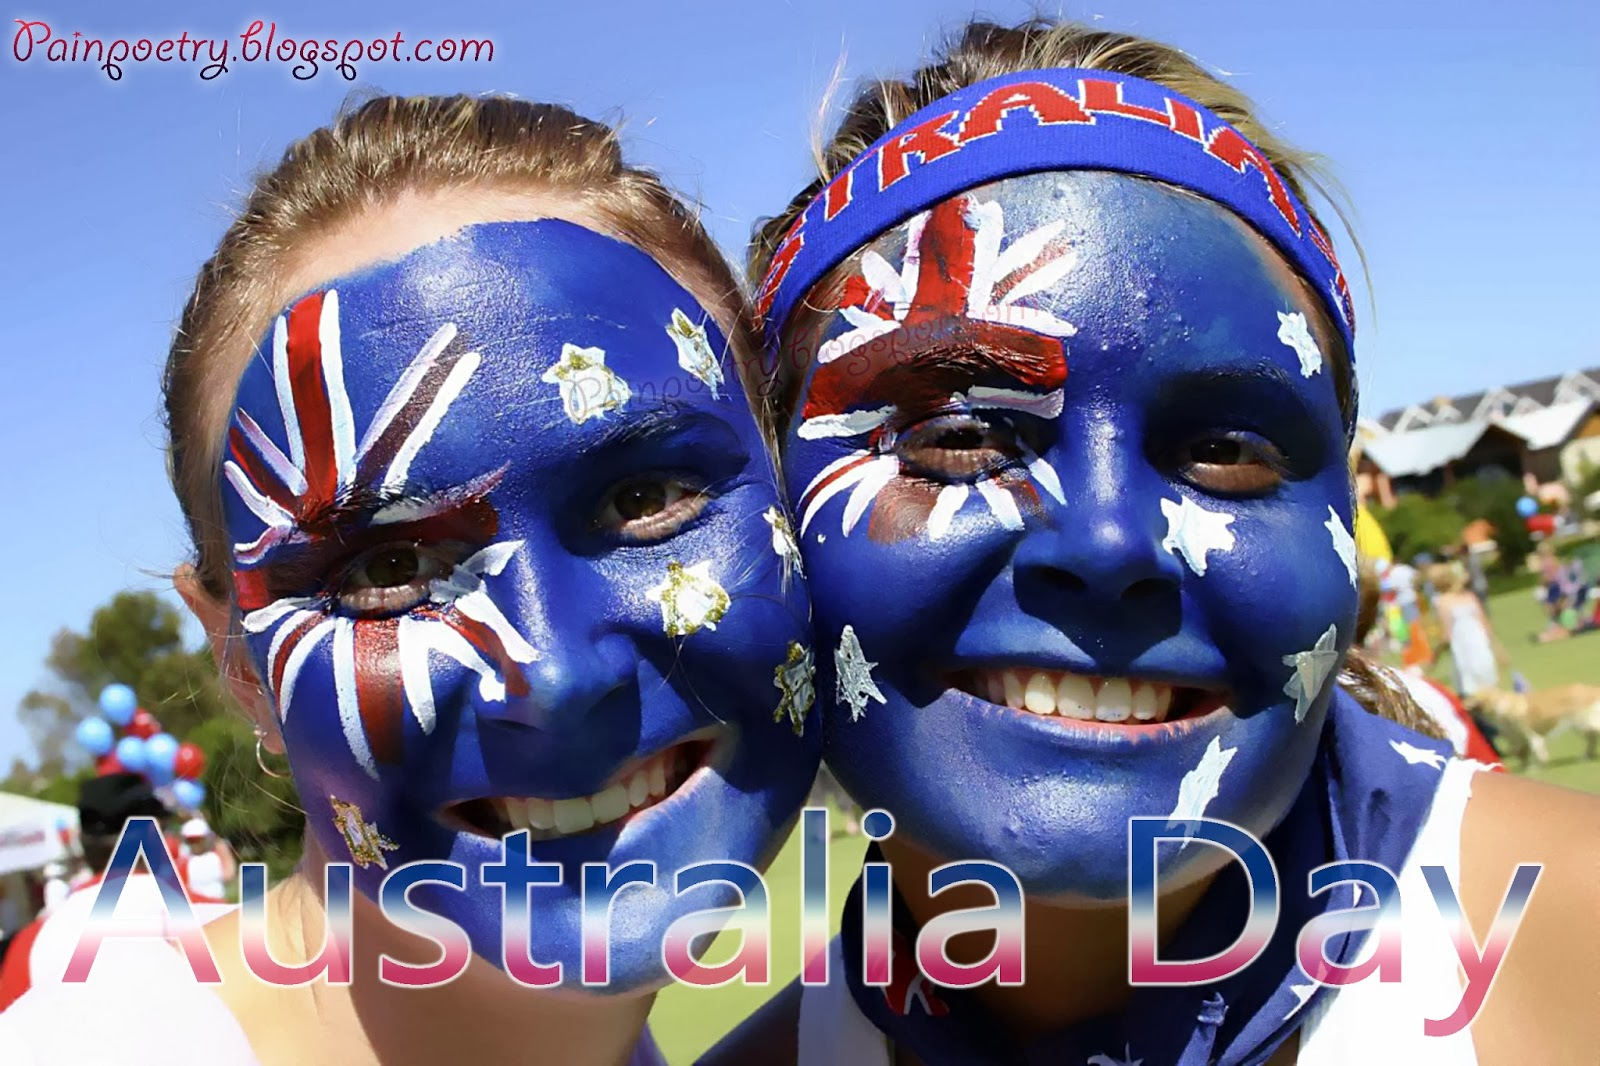 Painting-On-Face-Is-A-Must-When-Celebrating-Australia-Day-26-January-2014-Image-HD